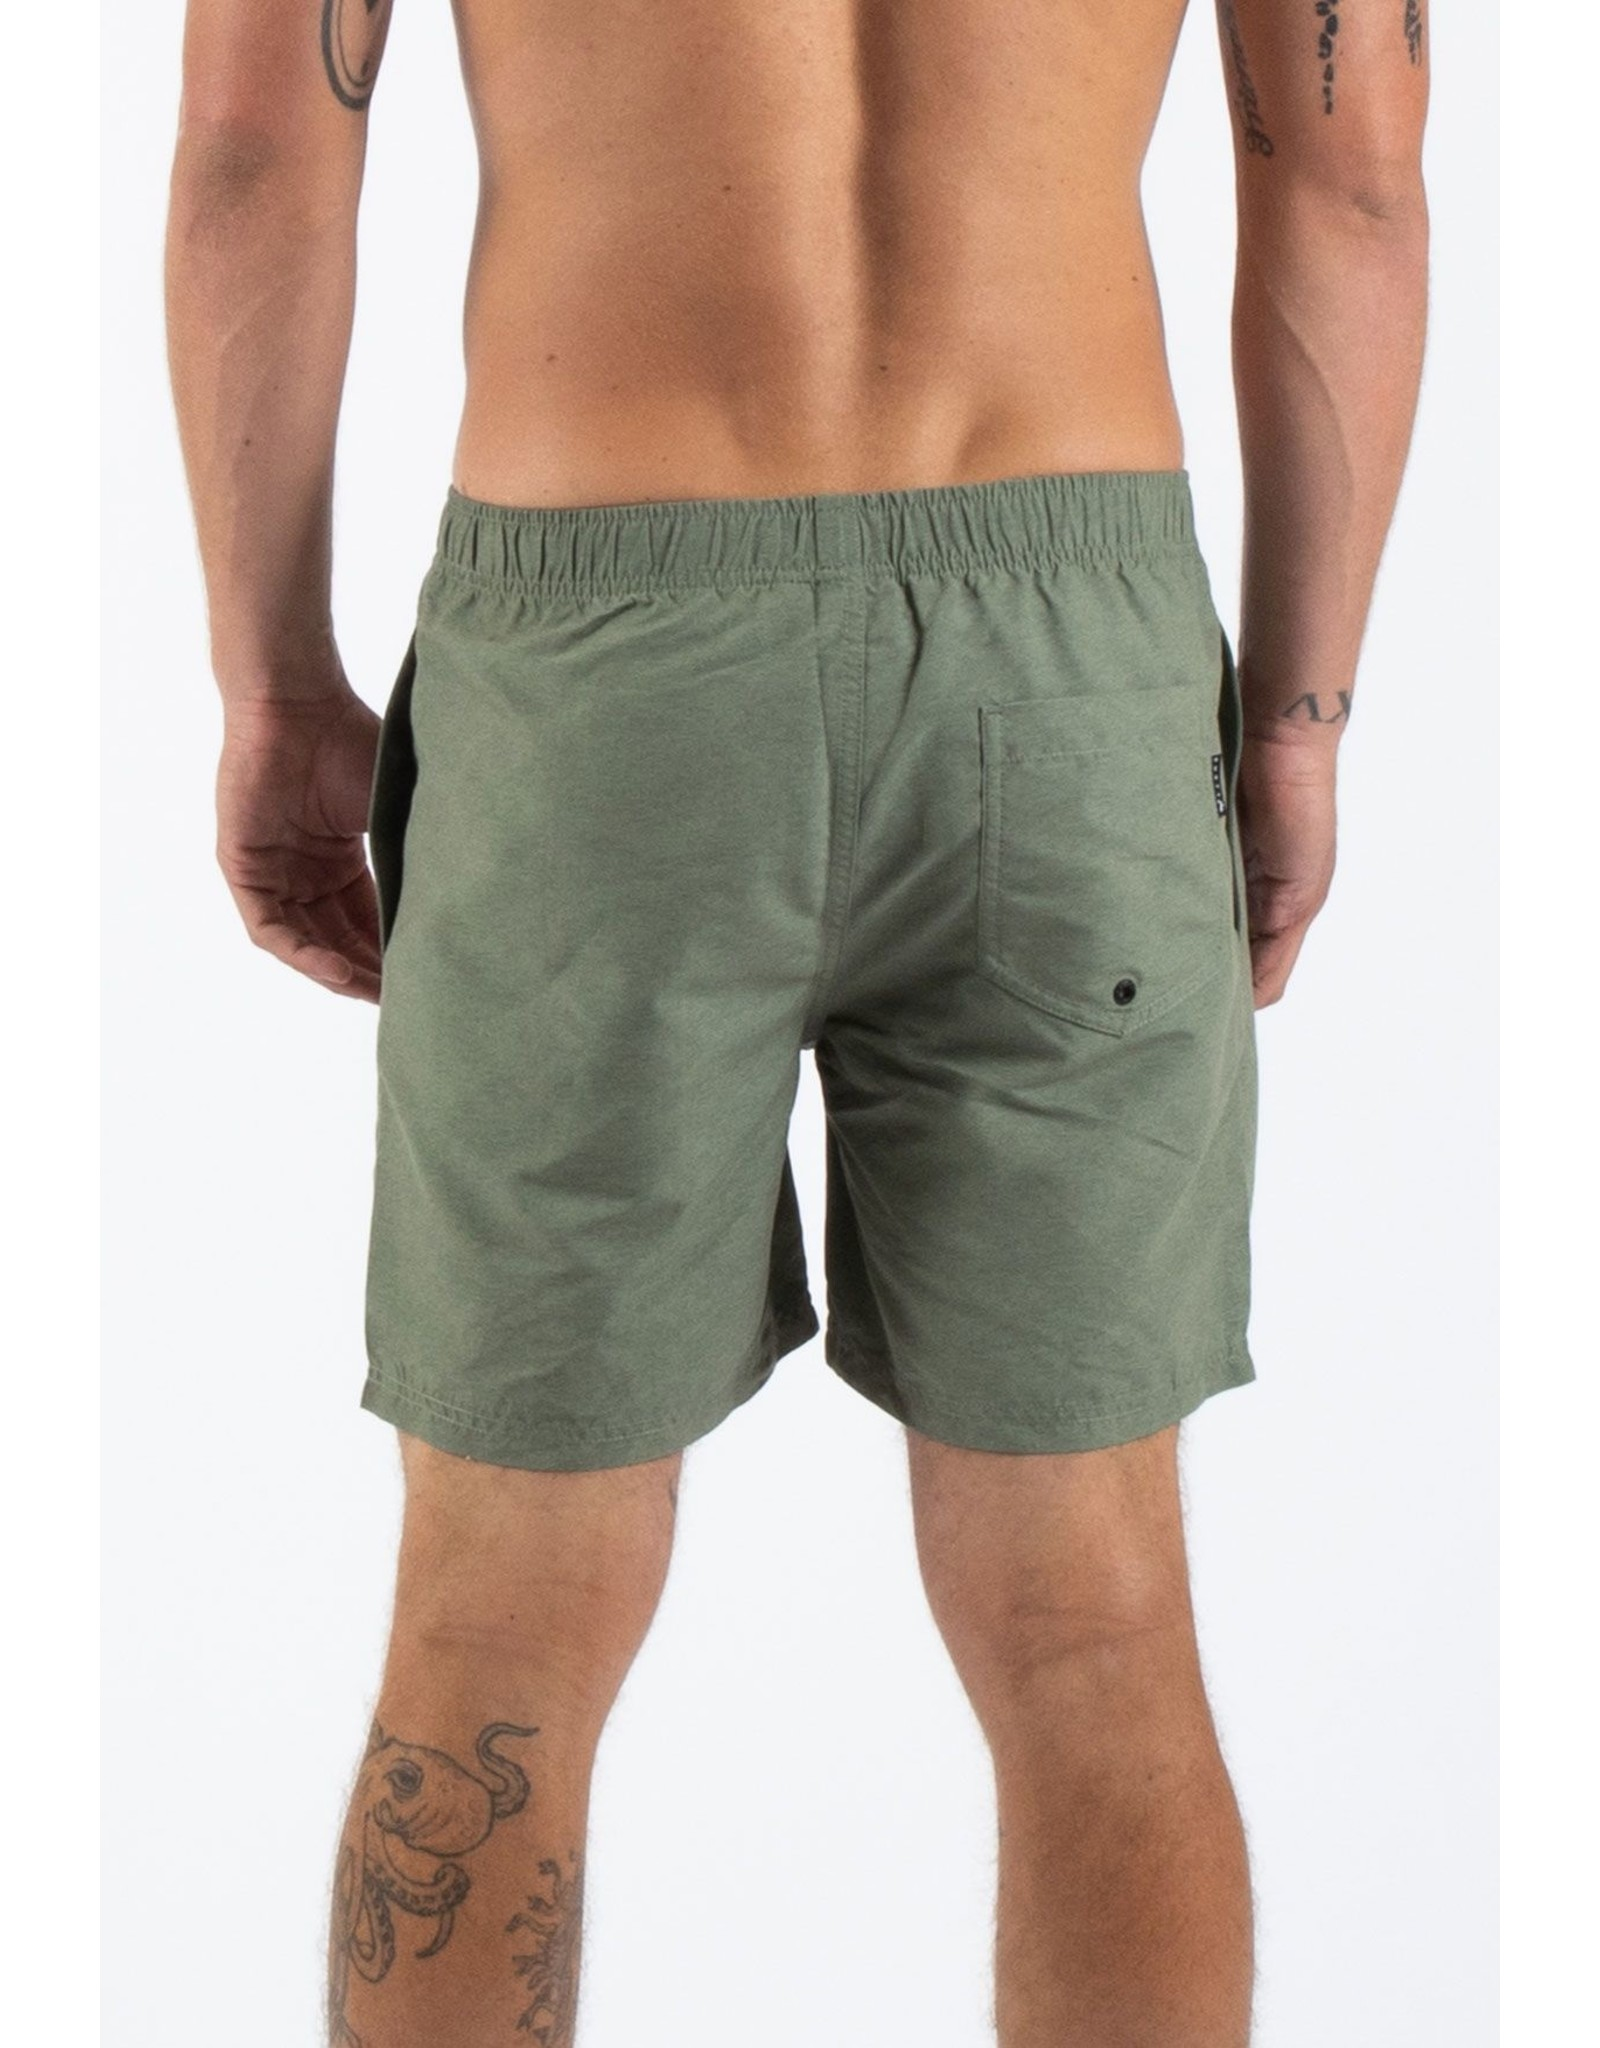 Rusty BASE 17' ELASTIC WAIST BOARDSHORT